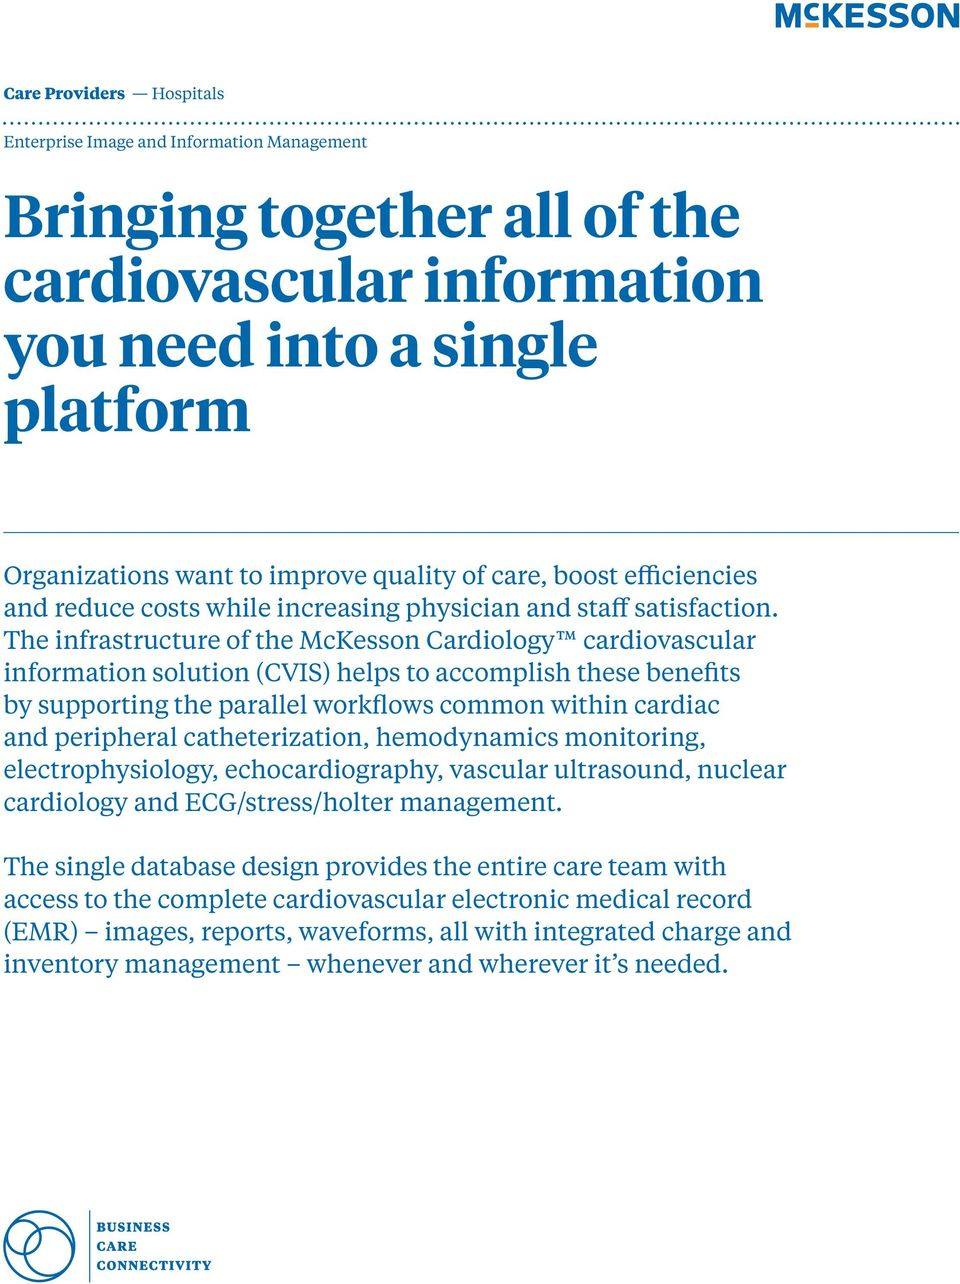 The infrastructure of the McKesson Cardiology cardiovascular information solution (CVIS) helps to accomplish these benefits by supporting the parallel workflows common within cardiac and peripheral